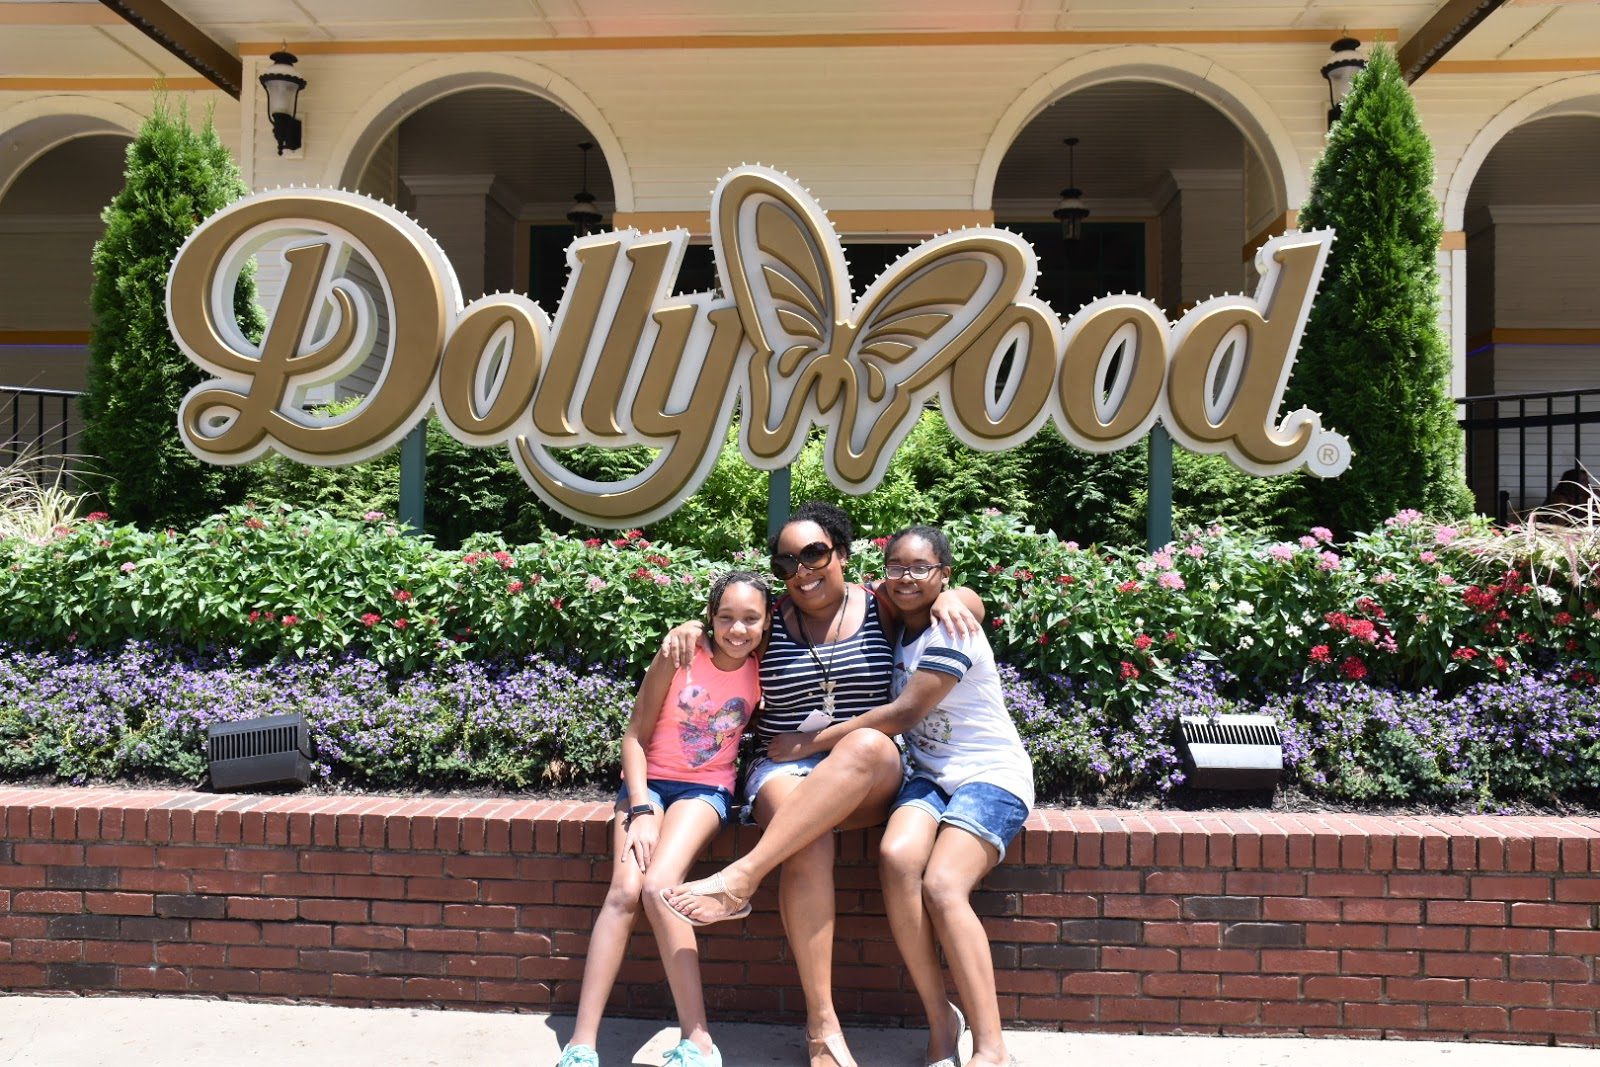 Dollywood Announces Largest Park Expansion in History with New Land Named Wildwood Grove  via  www.productreviewmom.com